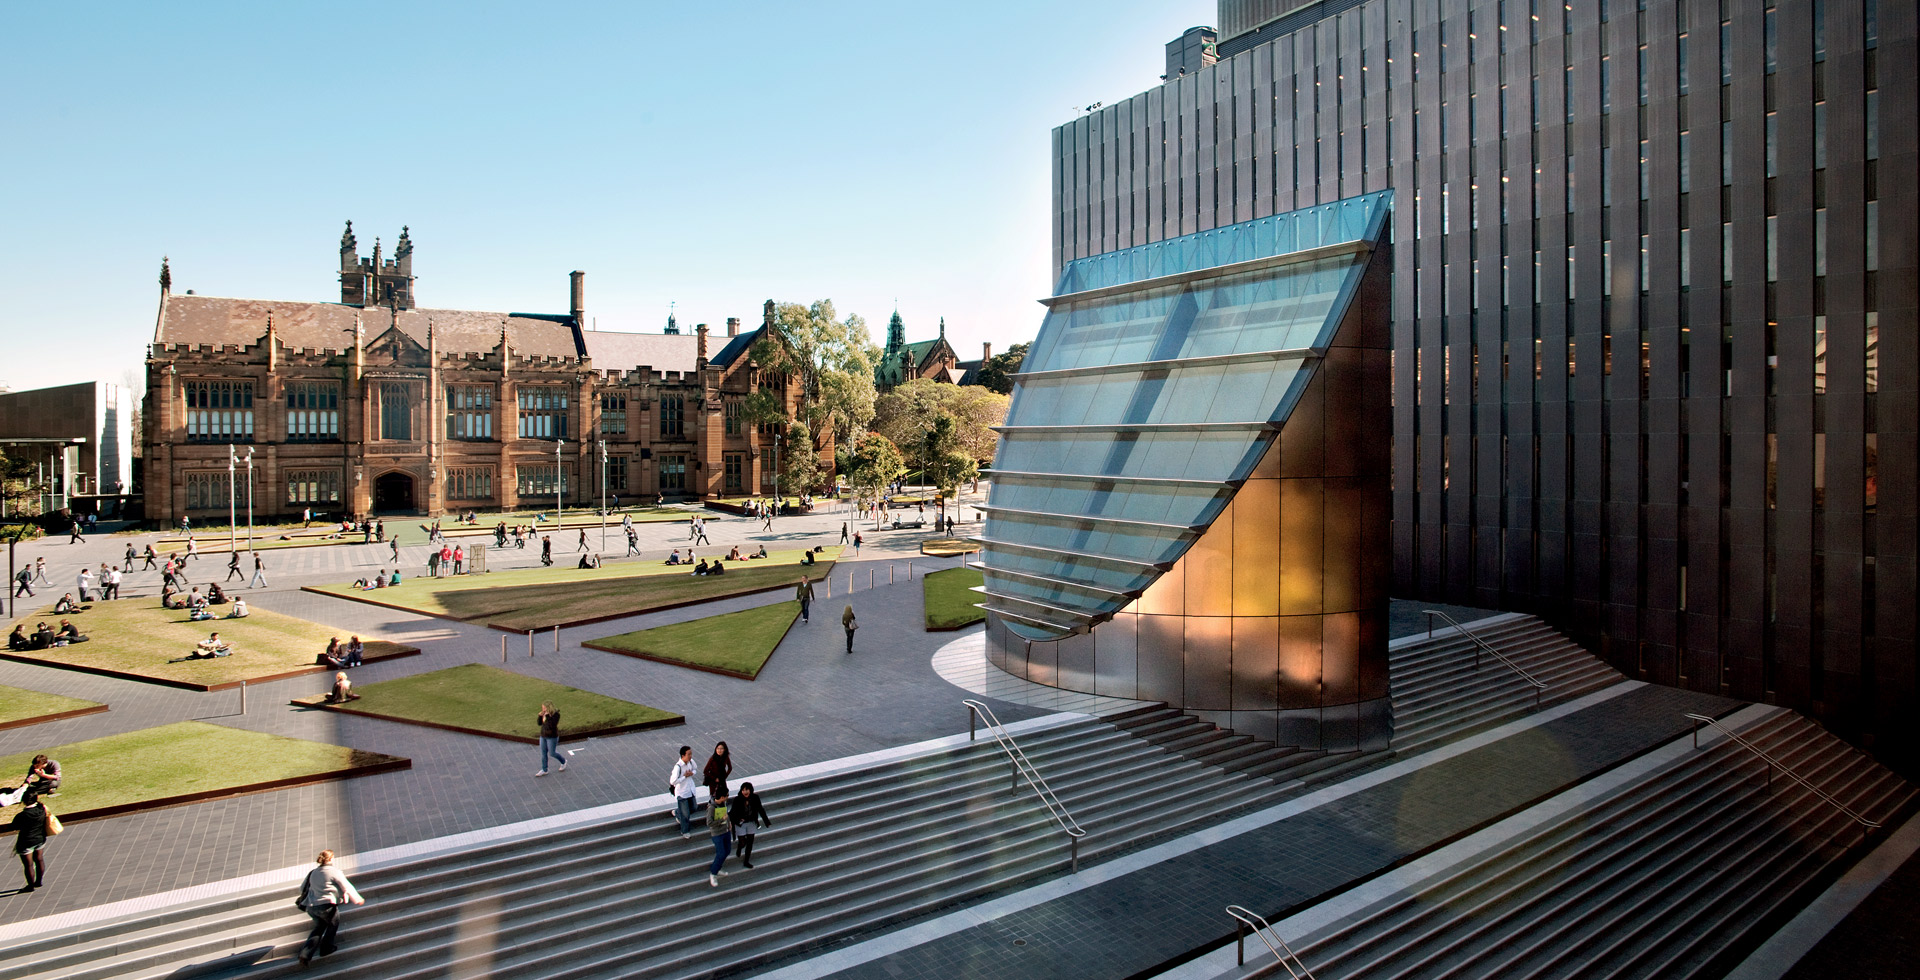 Law School, University of Sydney designed by fjmt